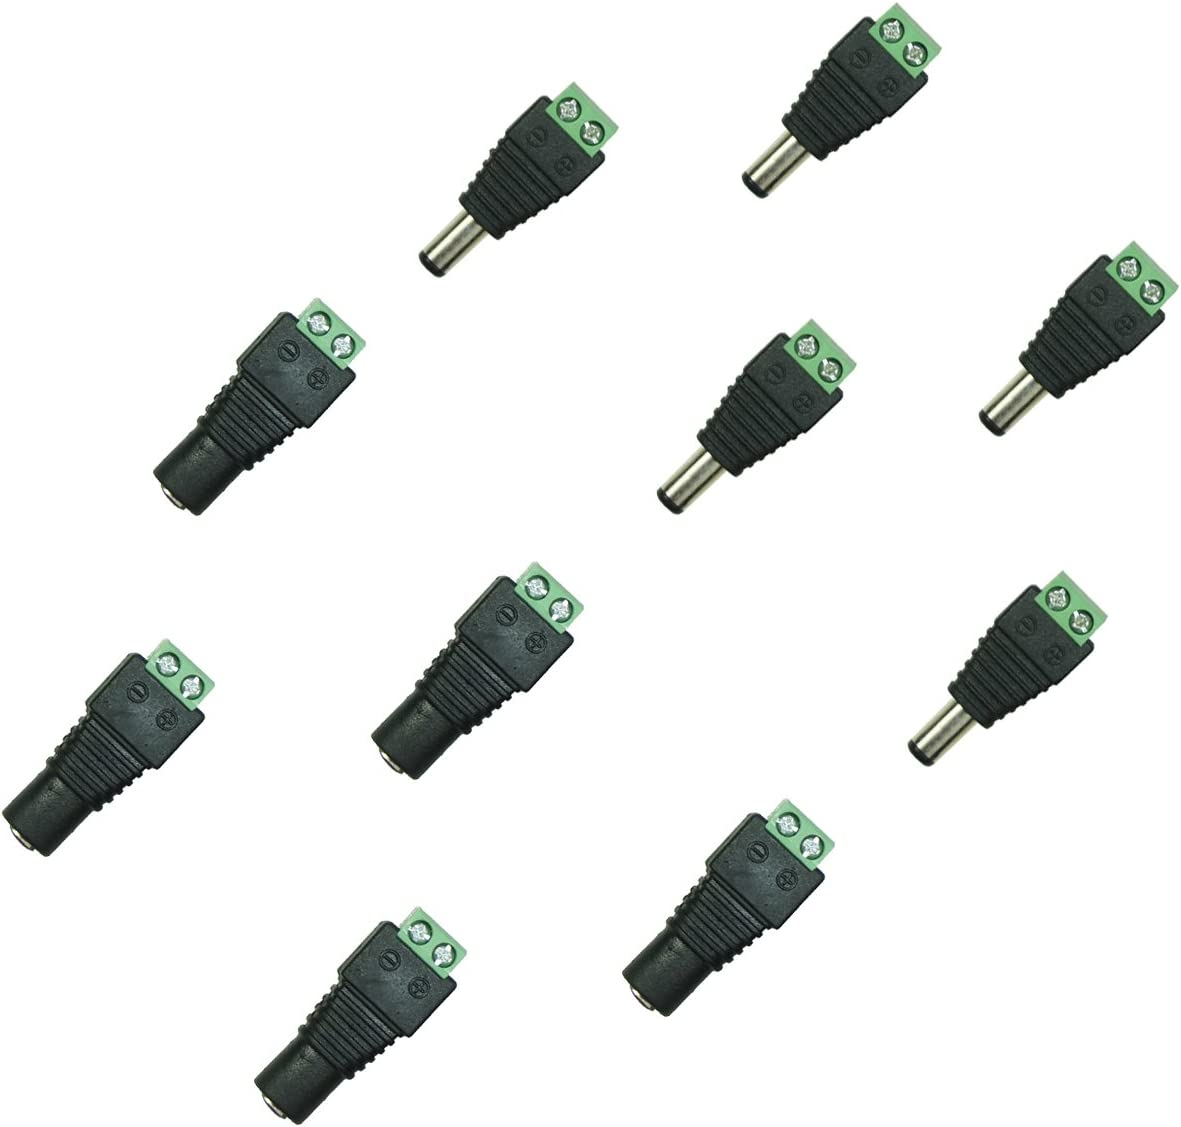 20 Pairs Male and Female 2.1x5.5mm DC Power Plug Jack Adapter Connector for CCTV